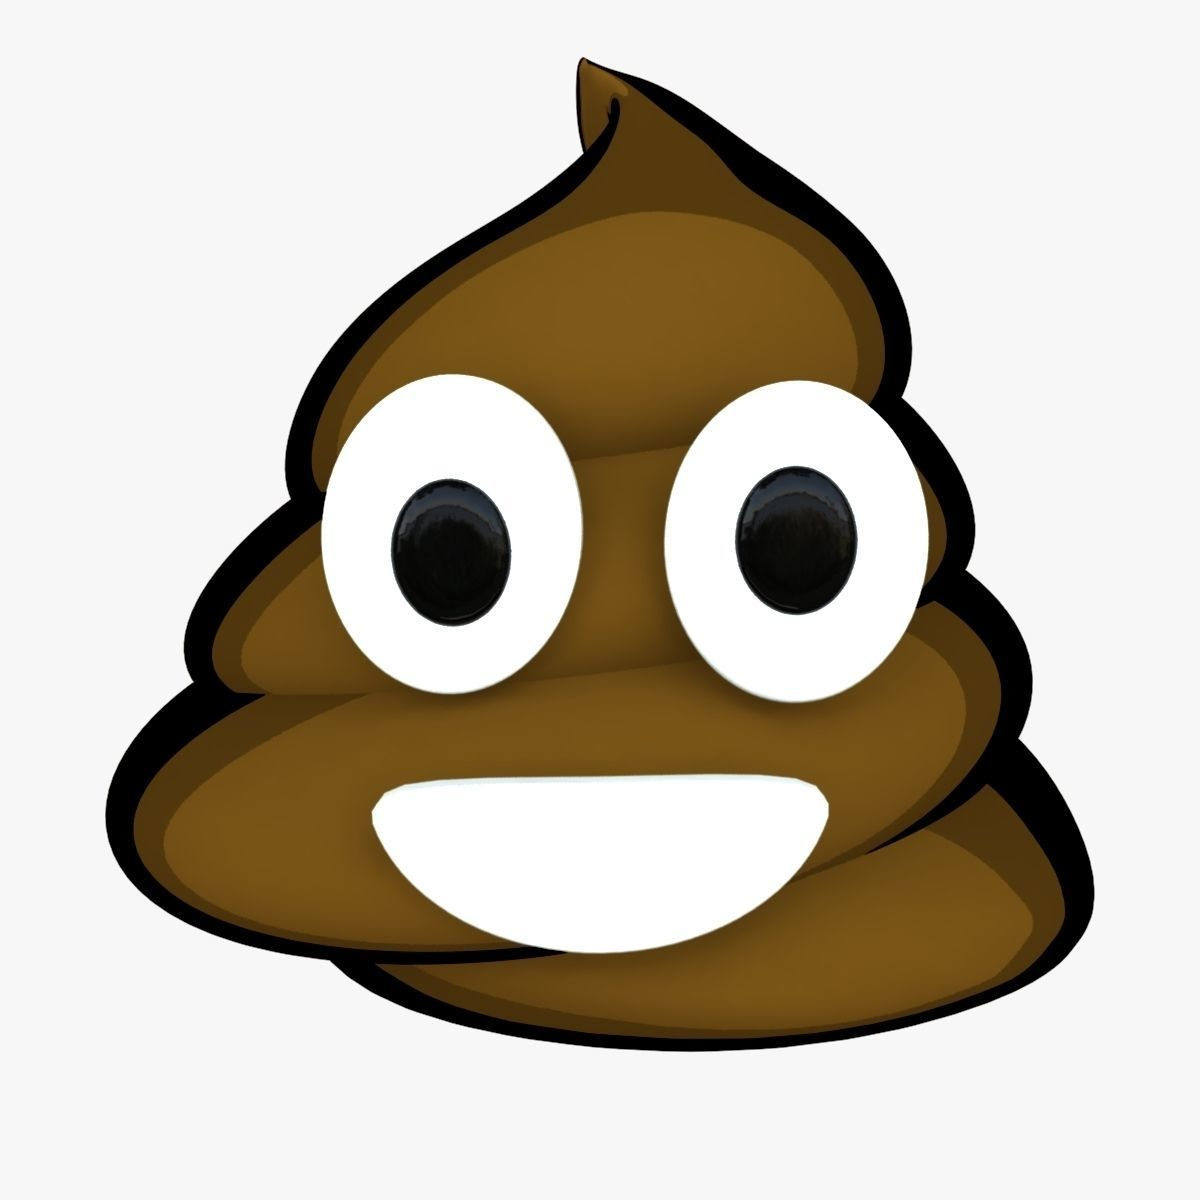 1200x1200 3d Model Smiling Pile Of Poo Emoji Cgtrader